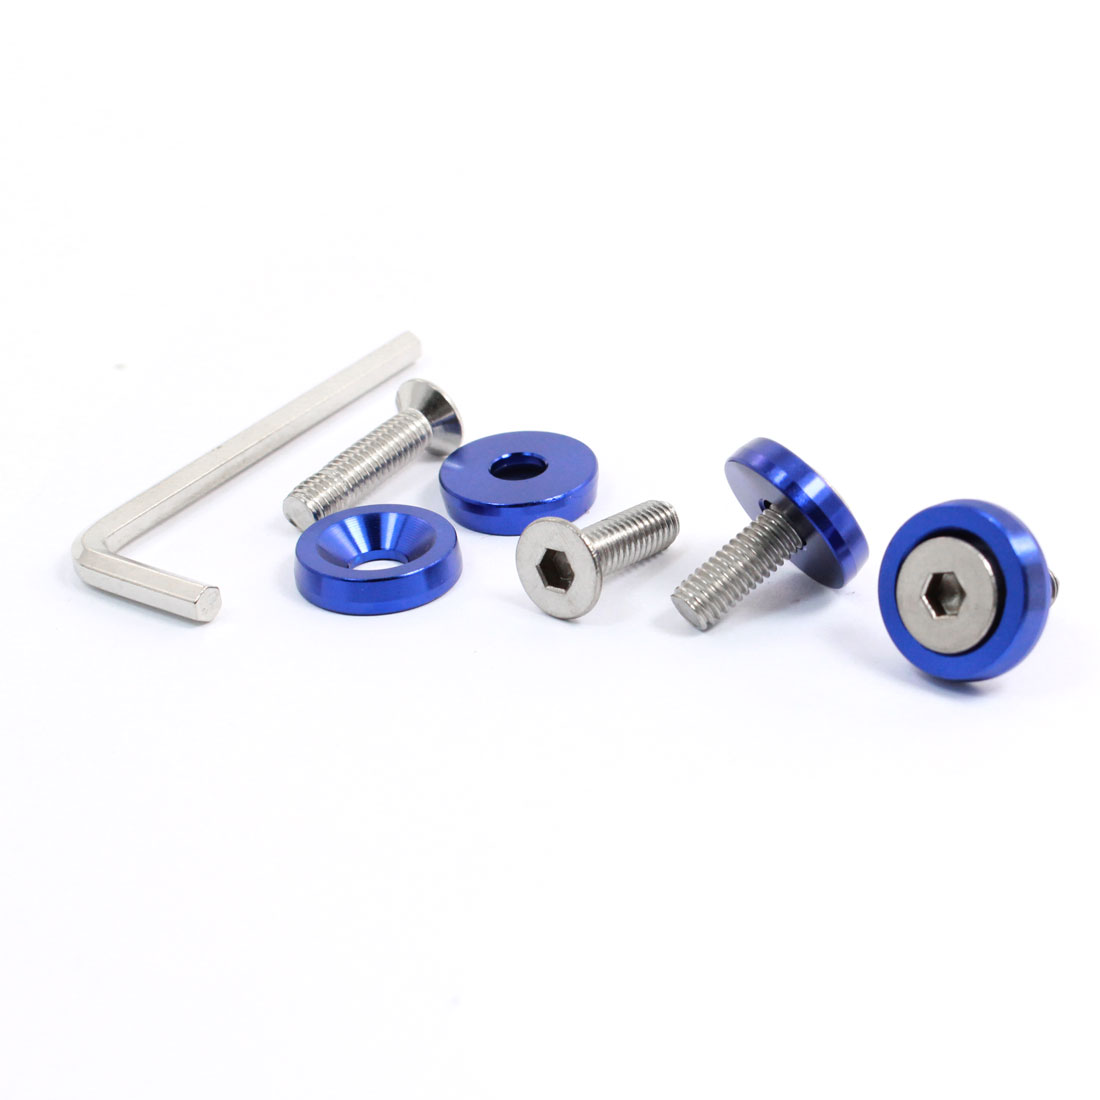 "Blue Metal License Plate Frame Bolts Screws Cover Cap 0.7"" Dia 4 Pcs"